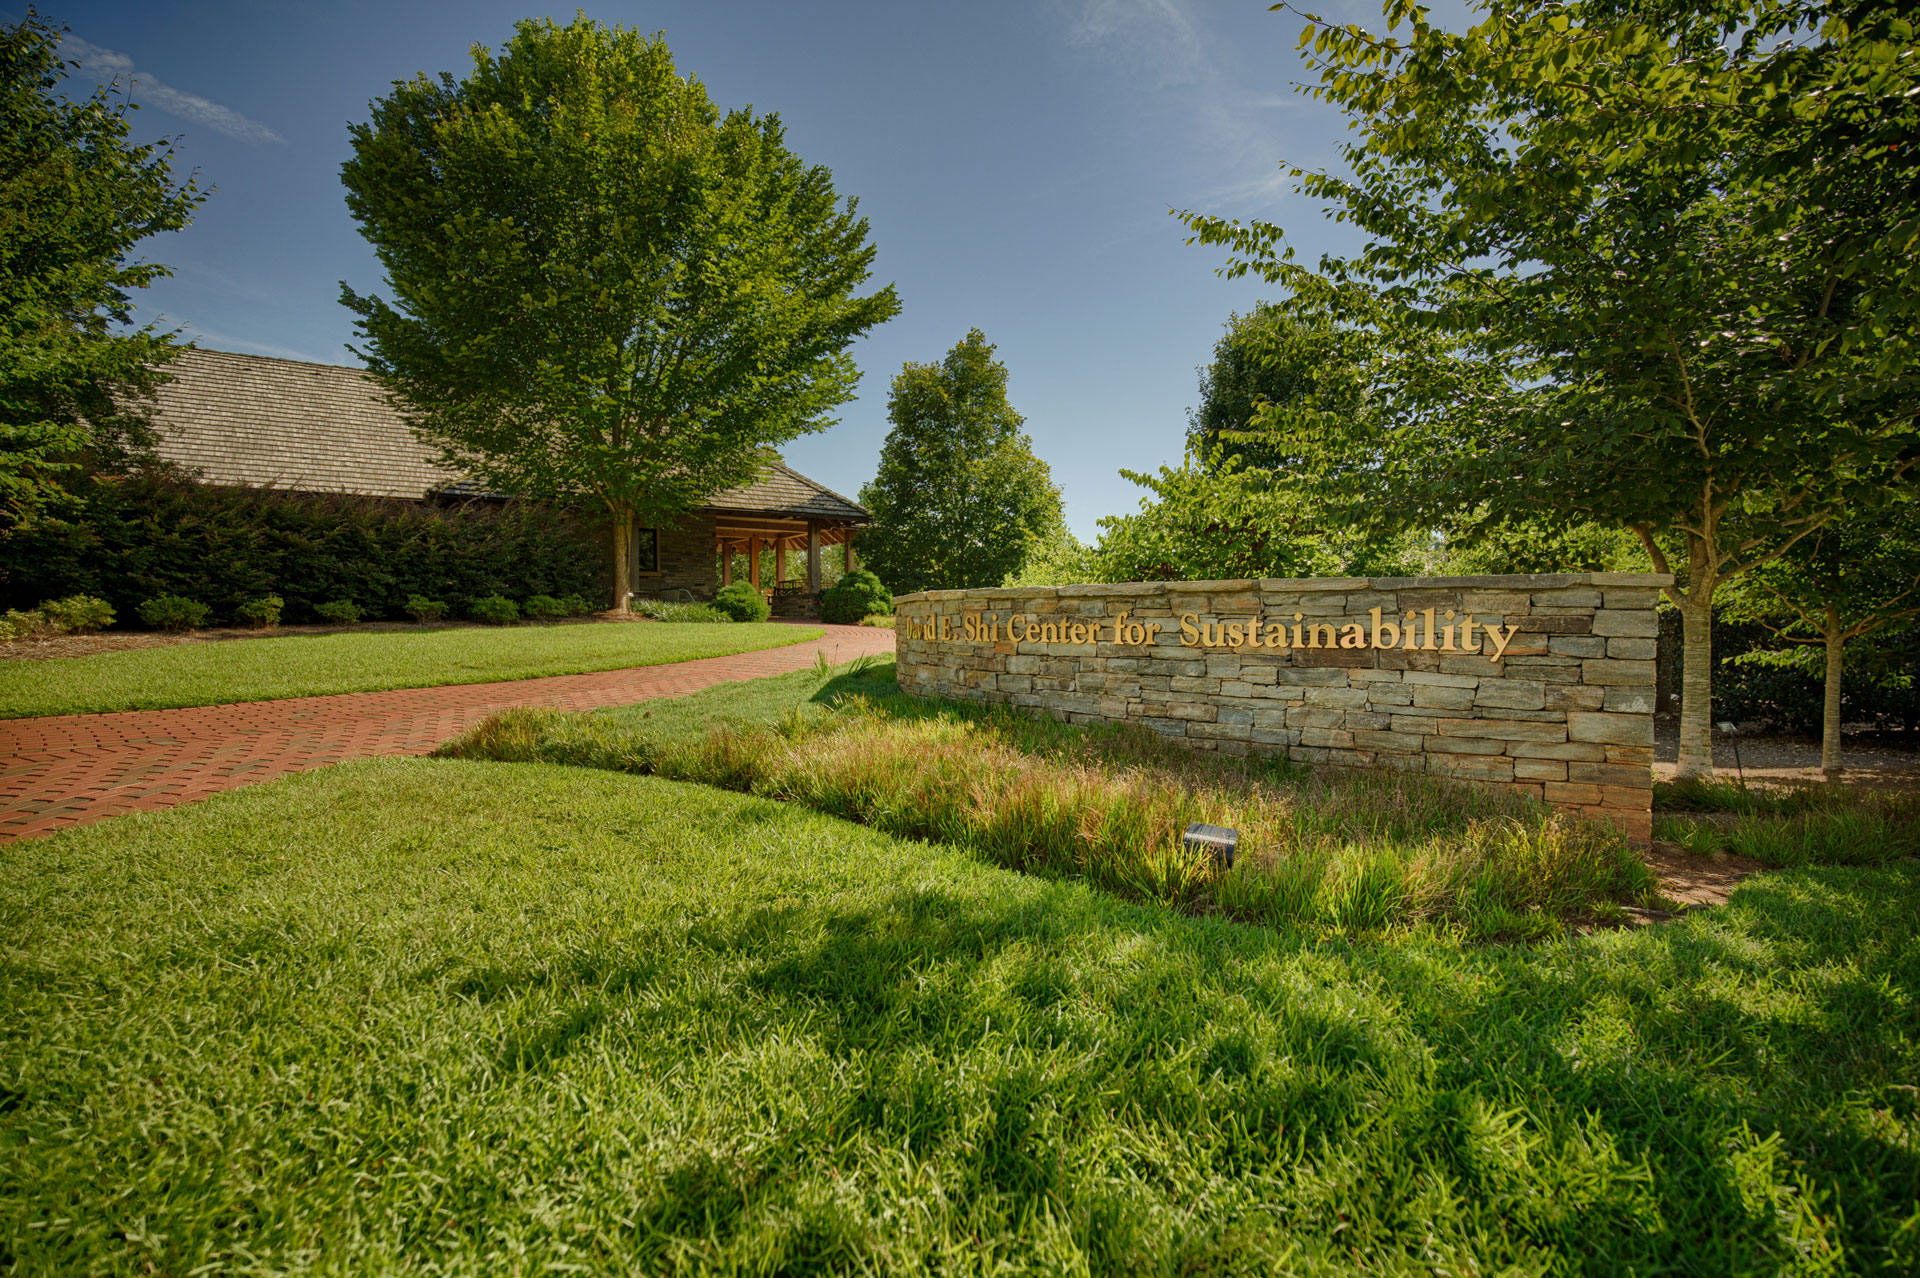 The David E. Shi Center was established at Furman in 2008.